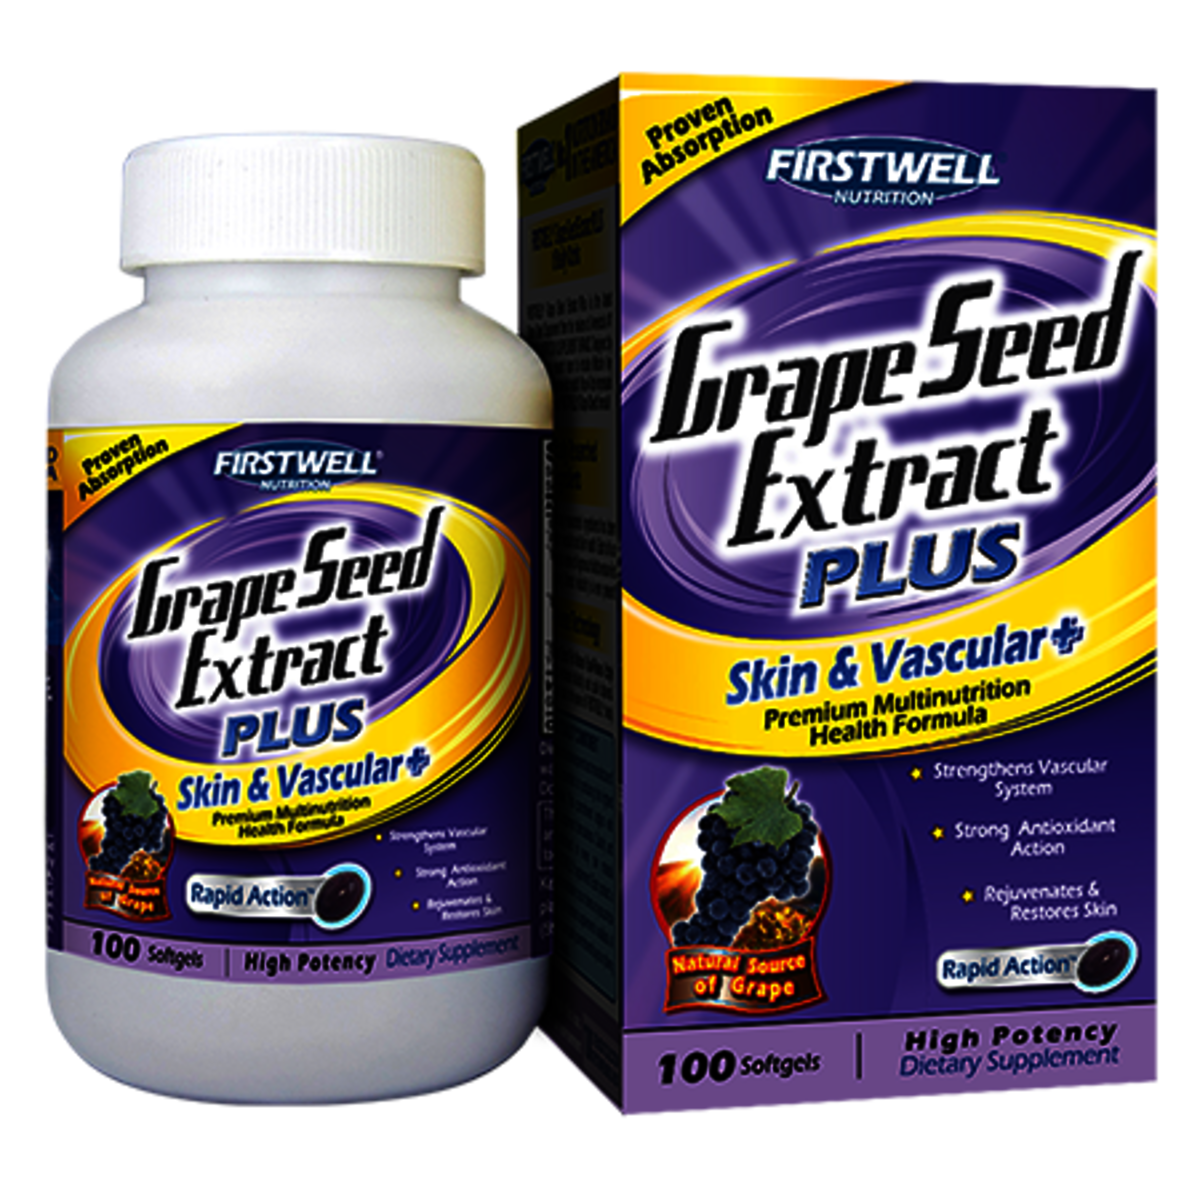 Firstwell Grape Seed Extract PLUS 100's